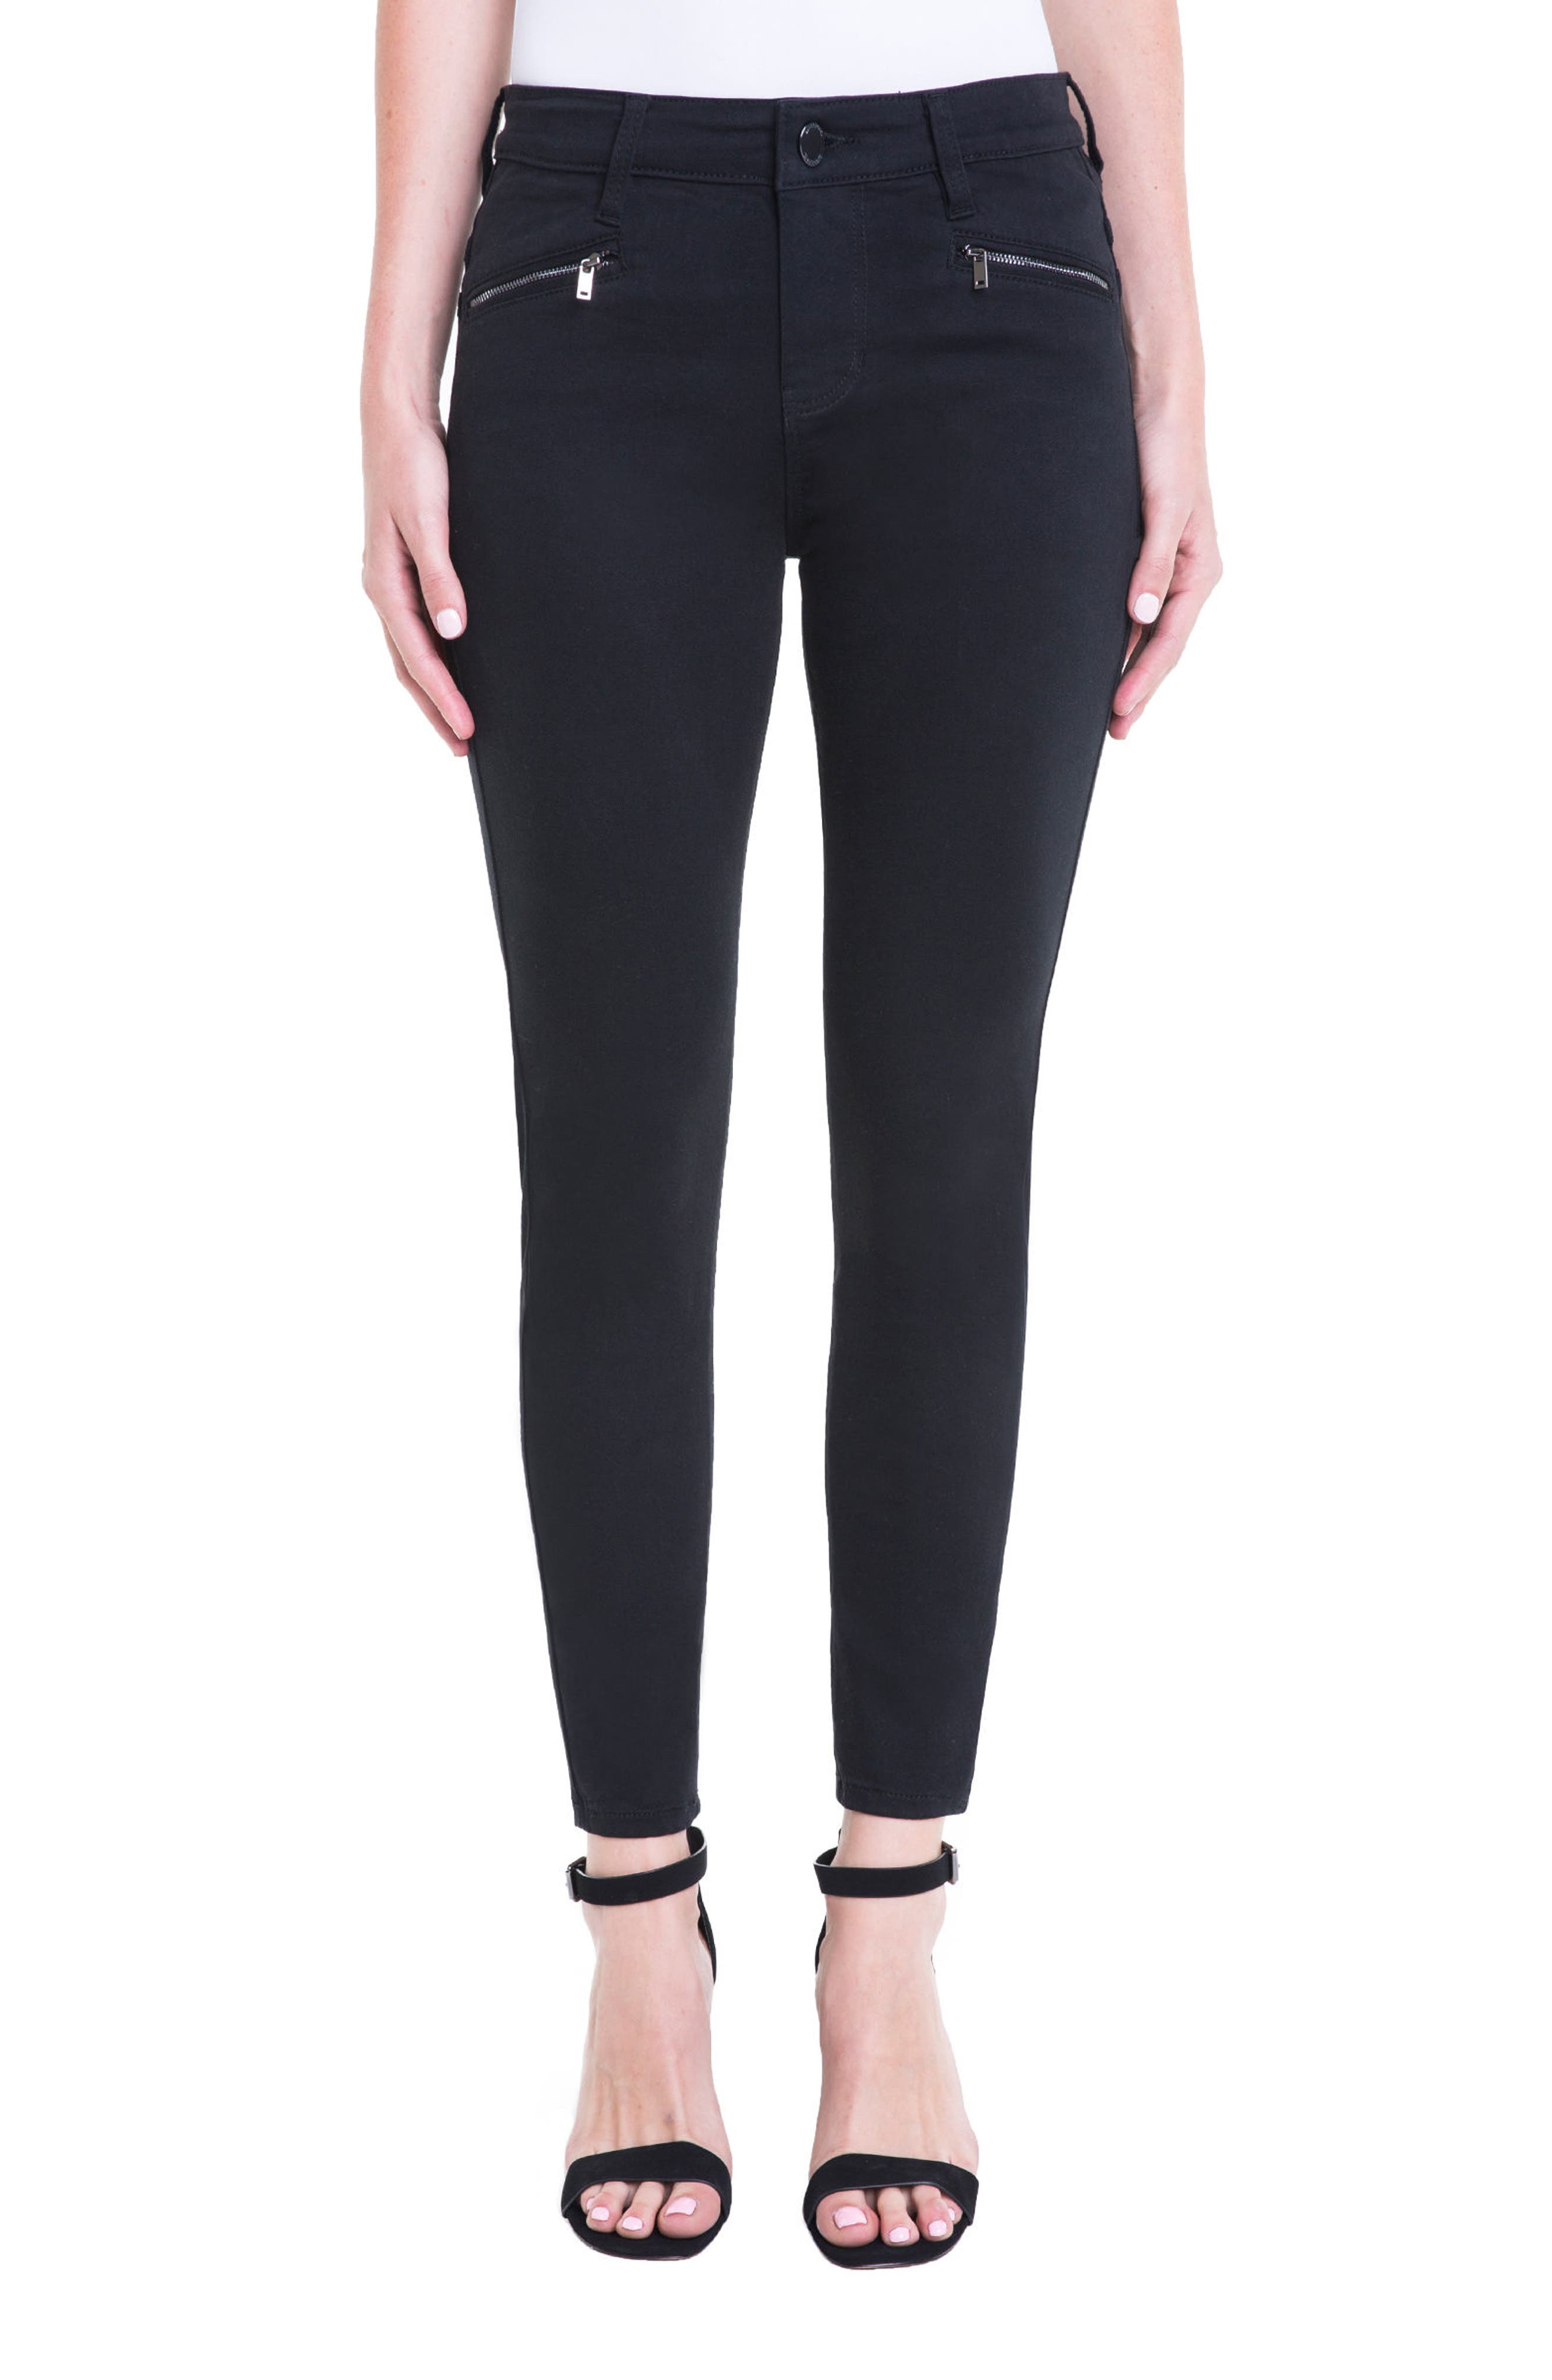 Main Image - Liverpool Jeans Company Remy Zipper Stretch Skinny Jeans